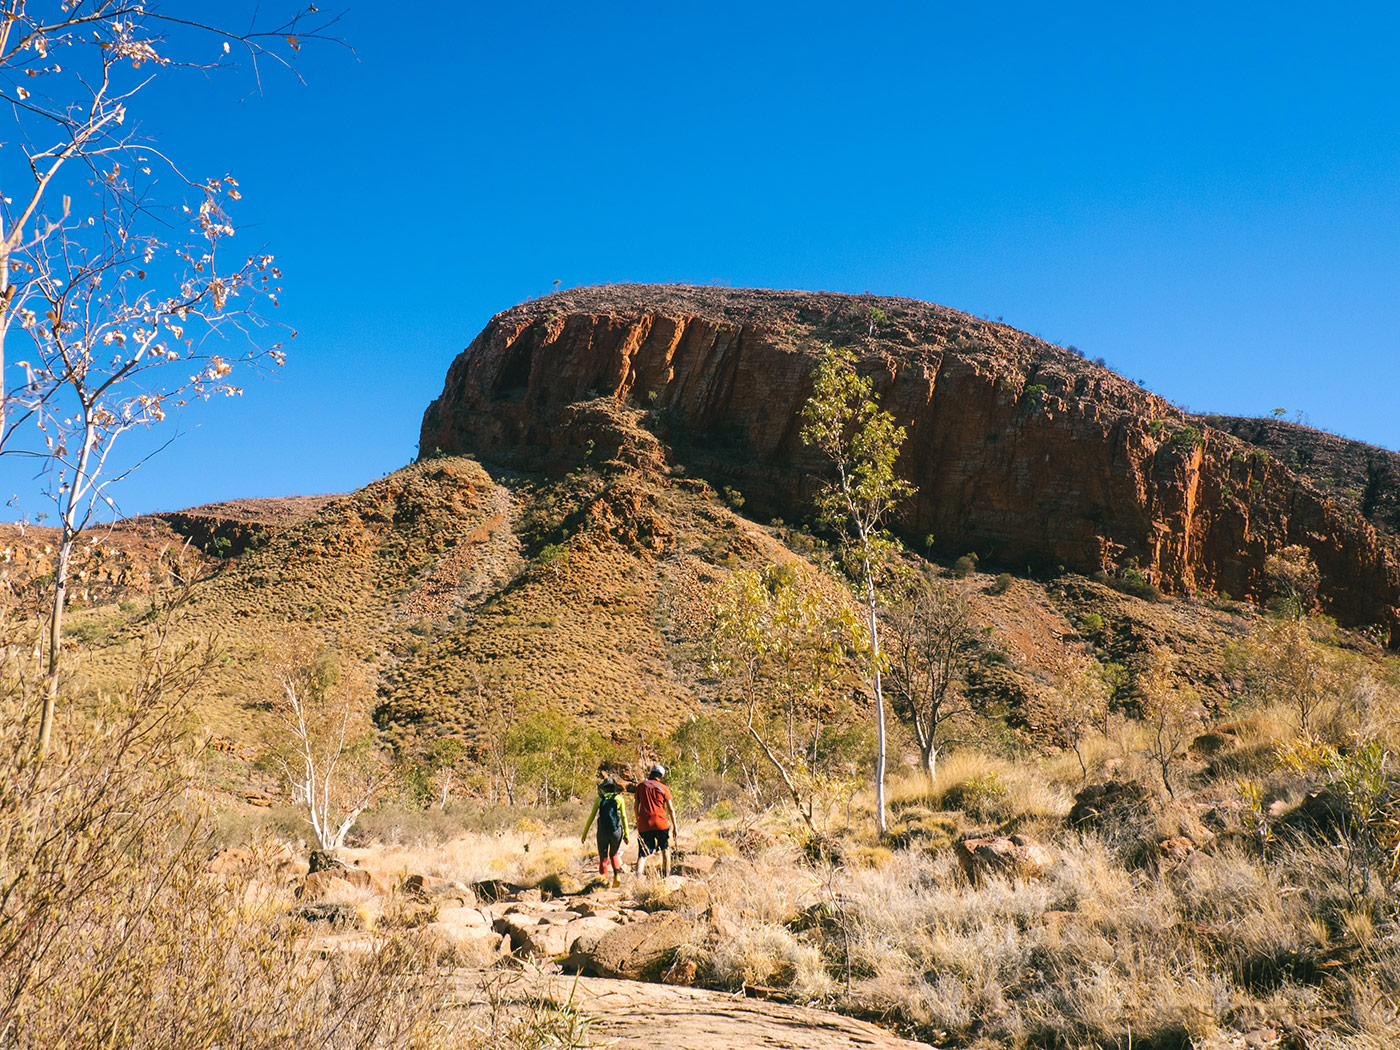 Odd shape mountain at Ormiston Gorge